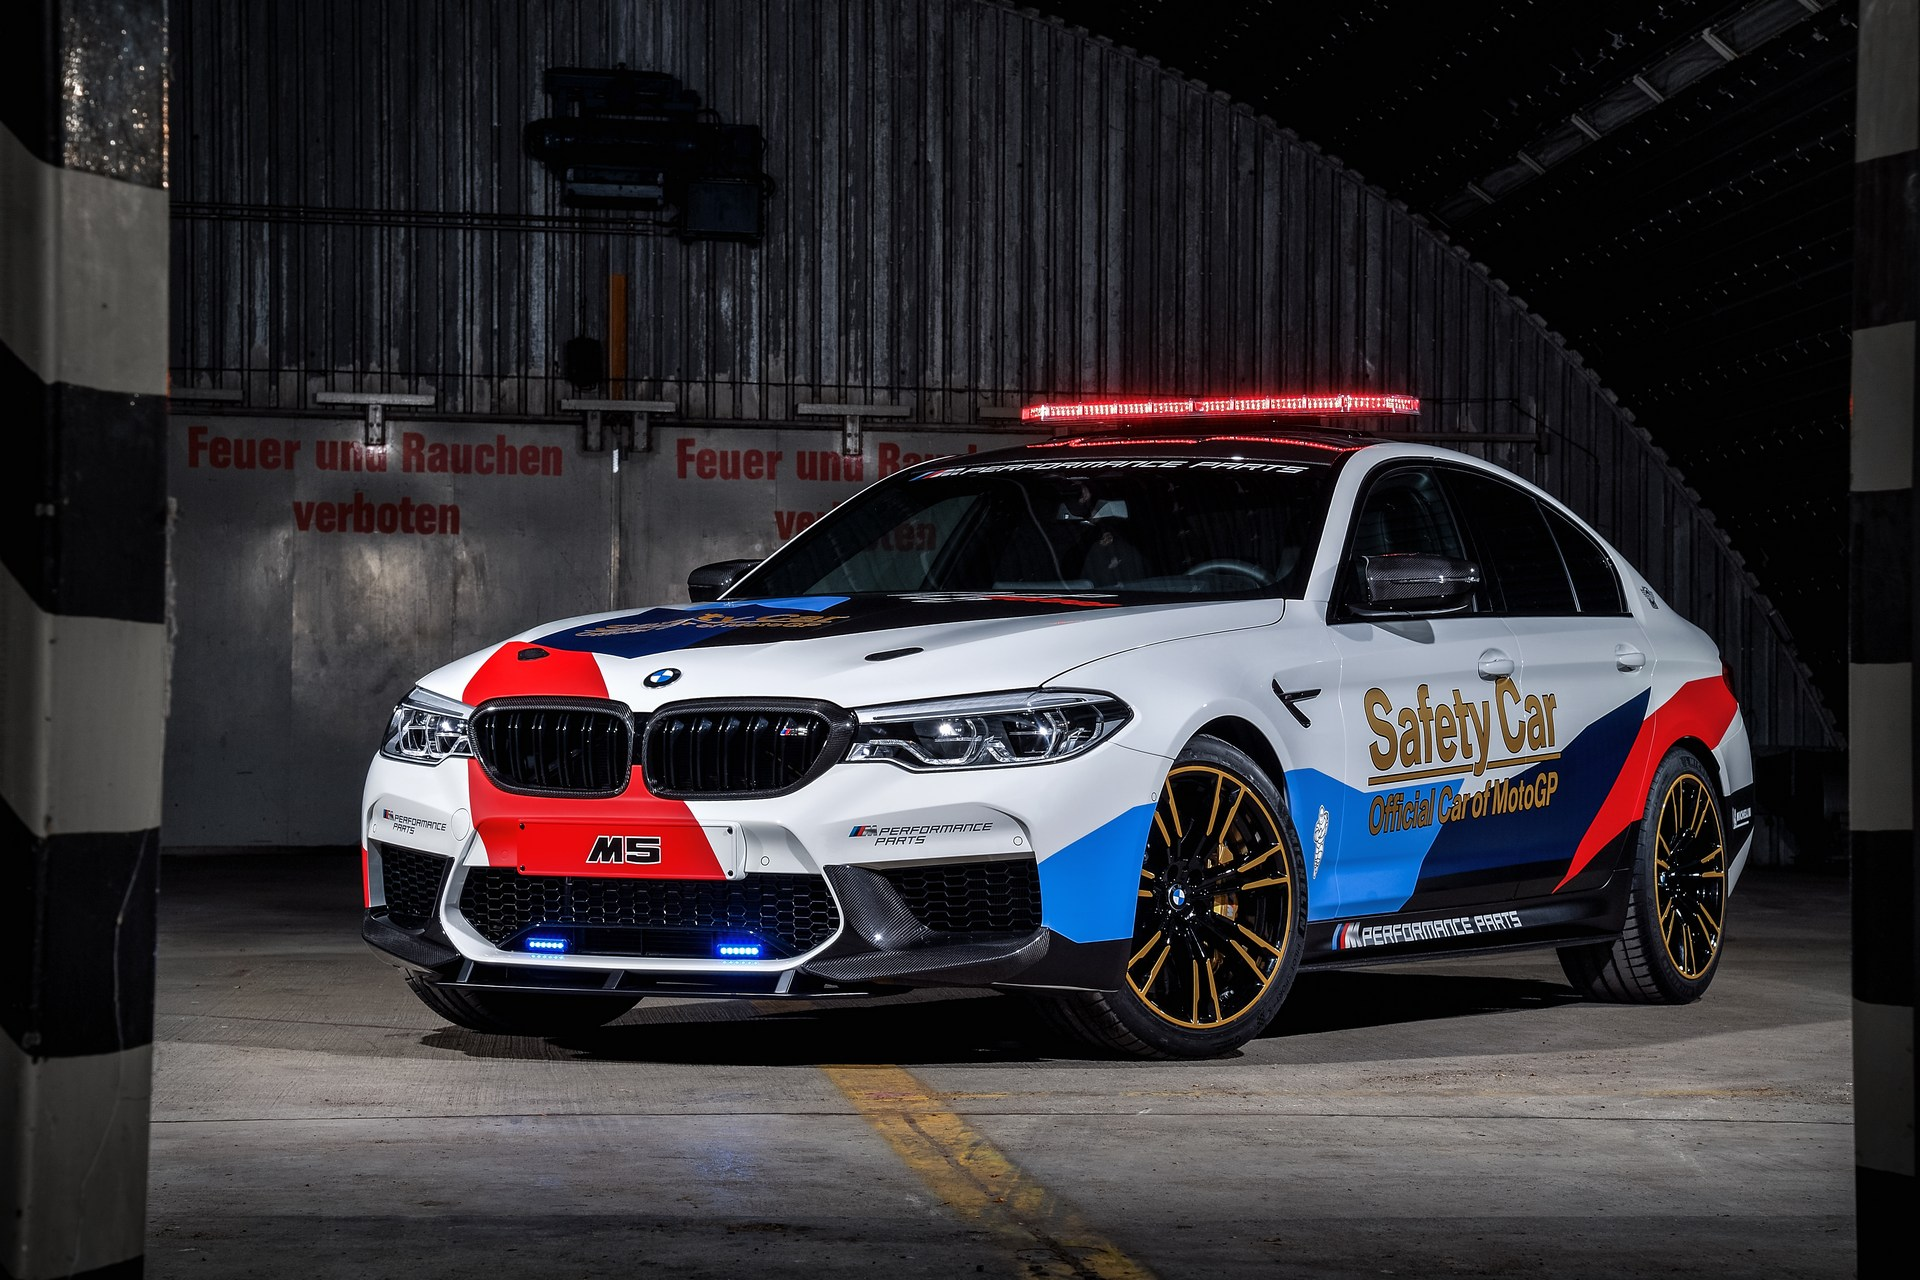 BMW_M5_Safety_Car_0002